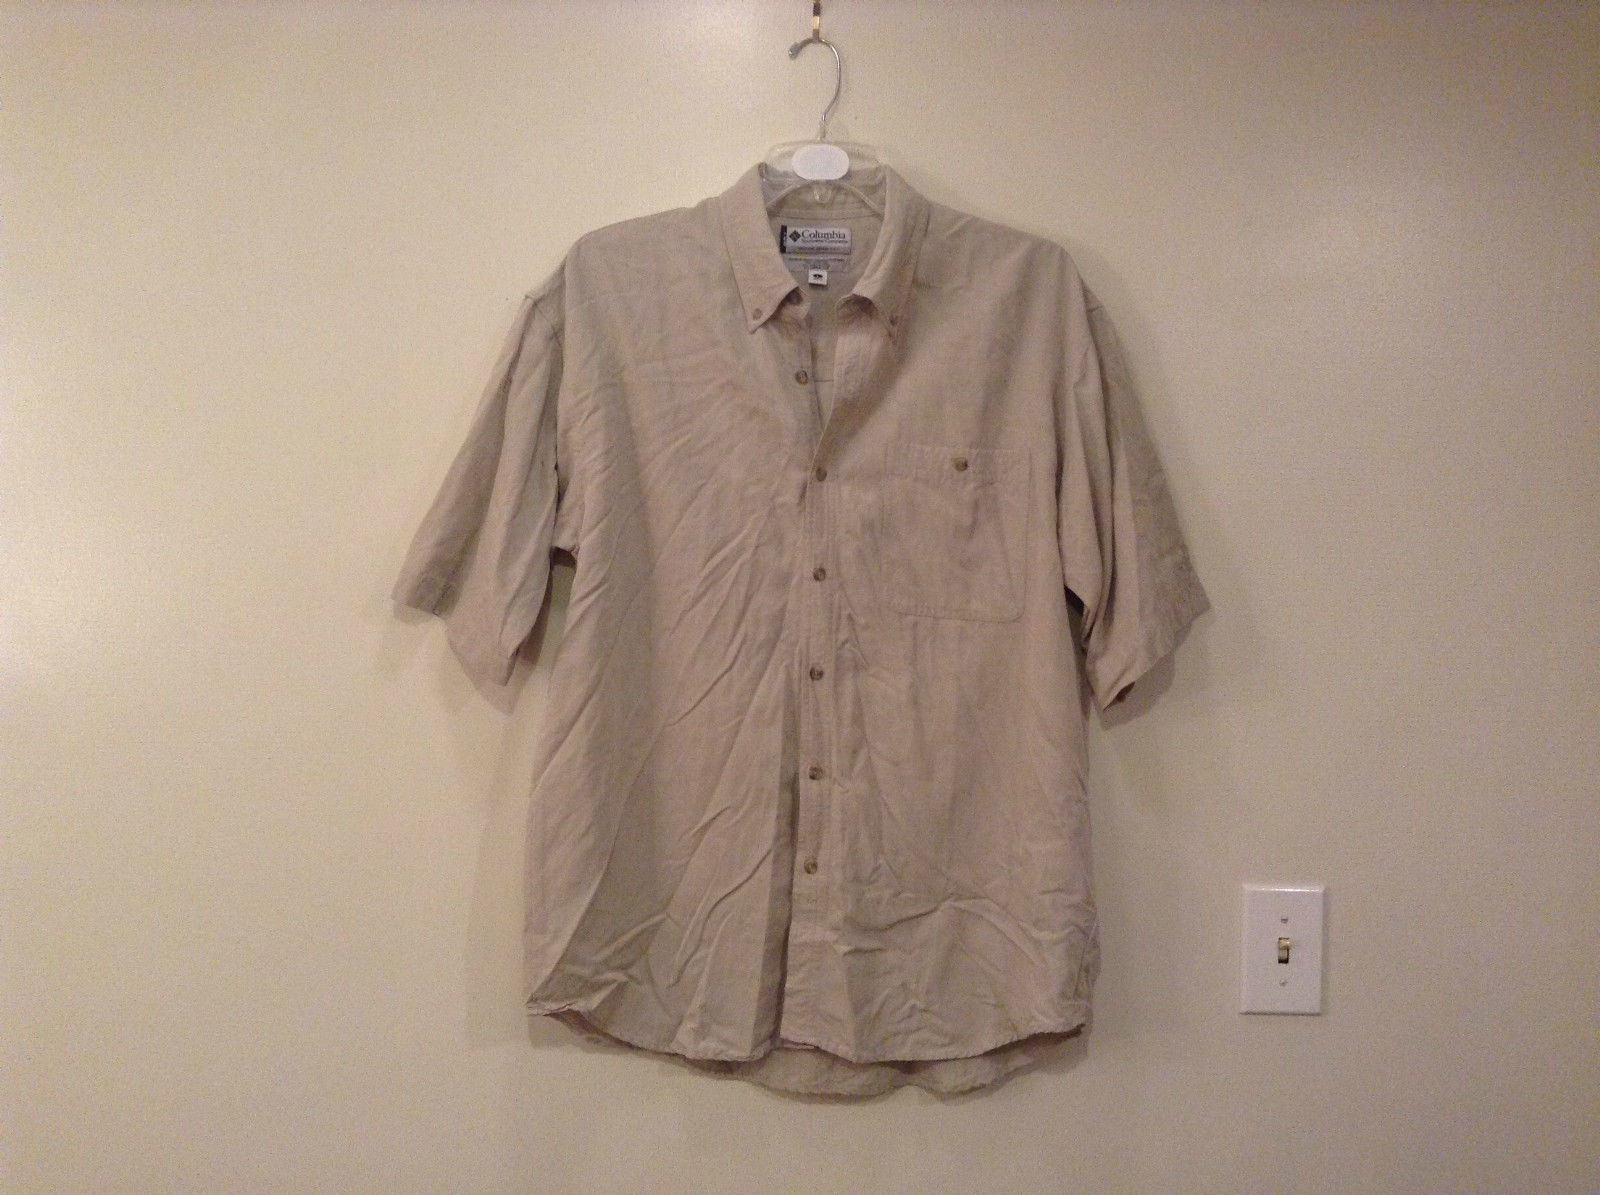 Light Gray Short Sleeve Button Up Casual Shirt Columbia 1 Pocket on Chest Size L